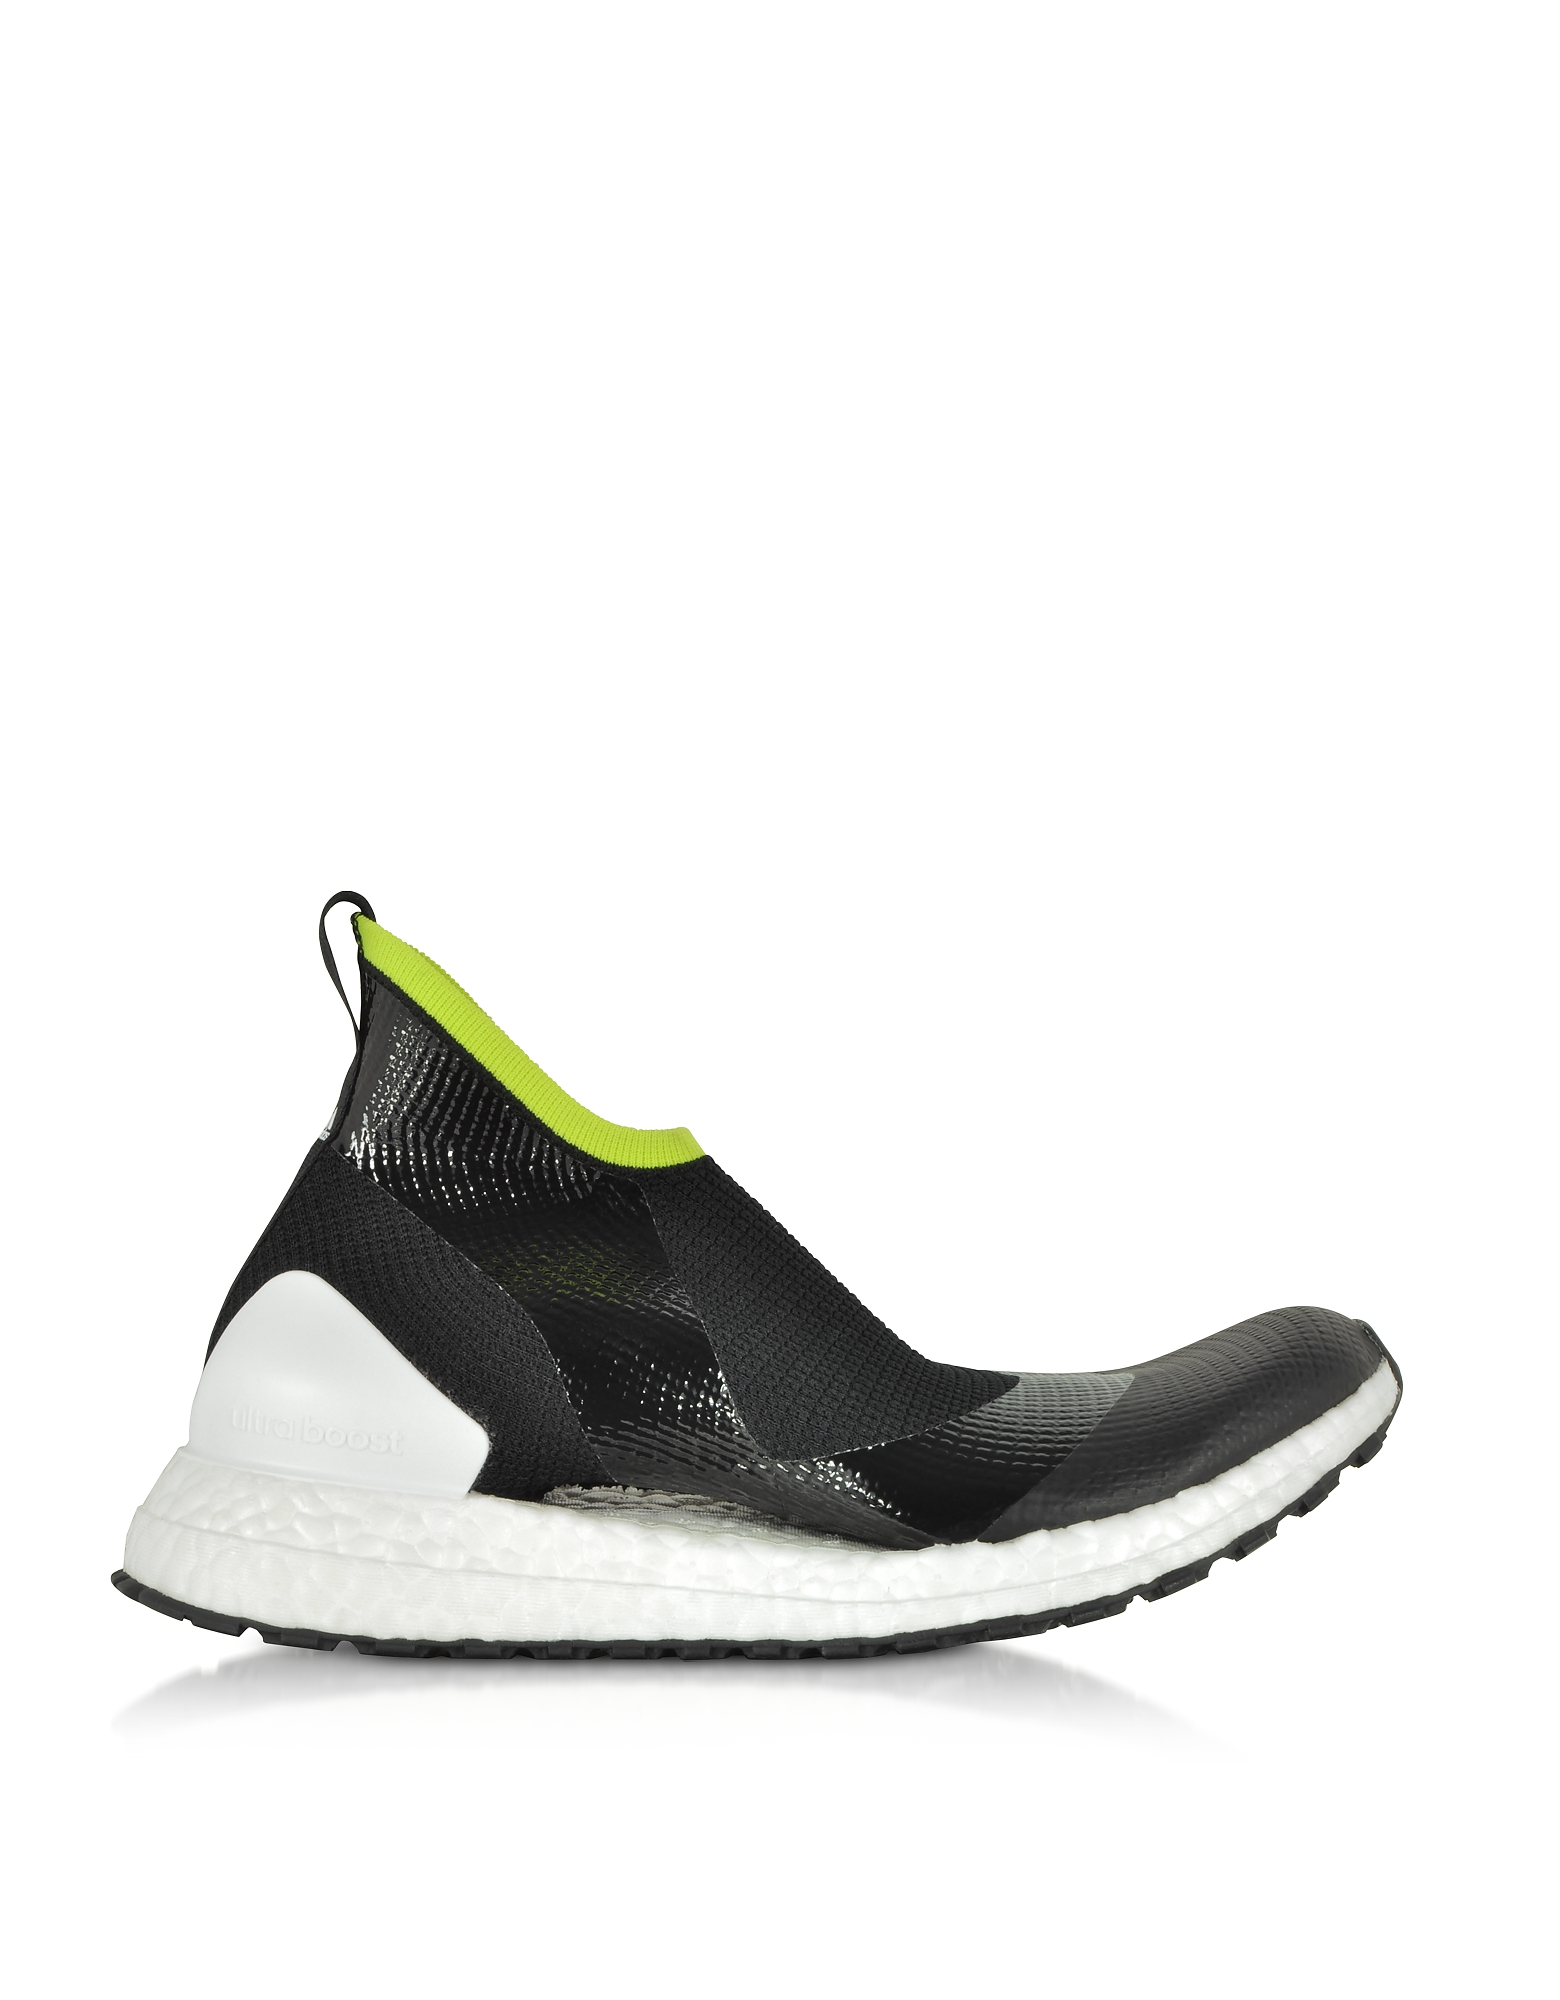 Adidas Stella McCartney Designer Shoes, UltraBOOST X ATR44 Black and Lime Women